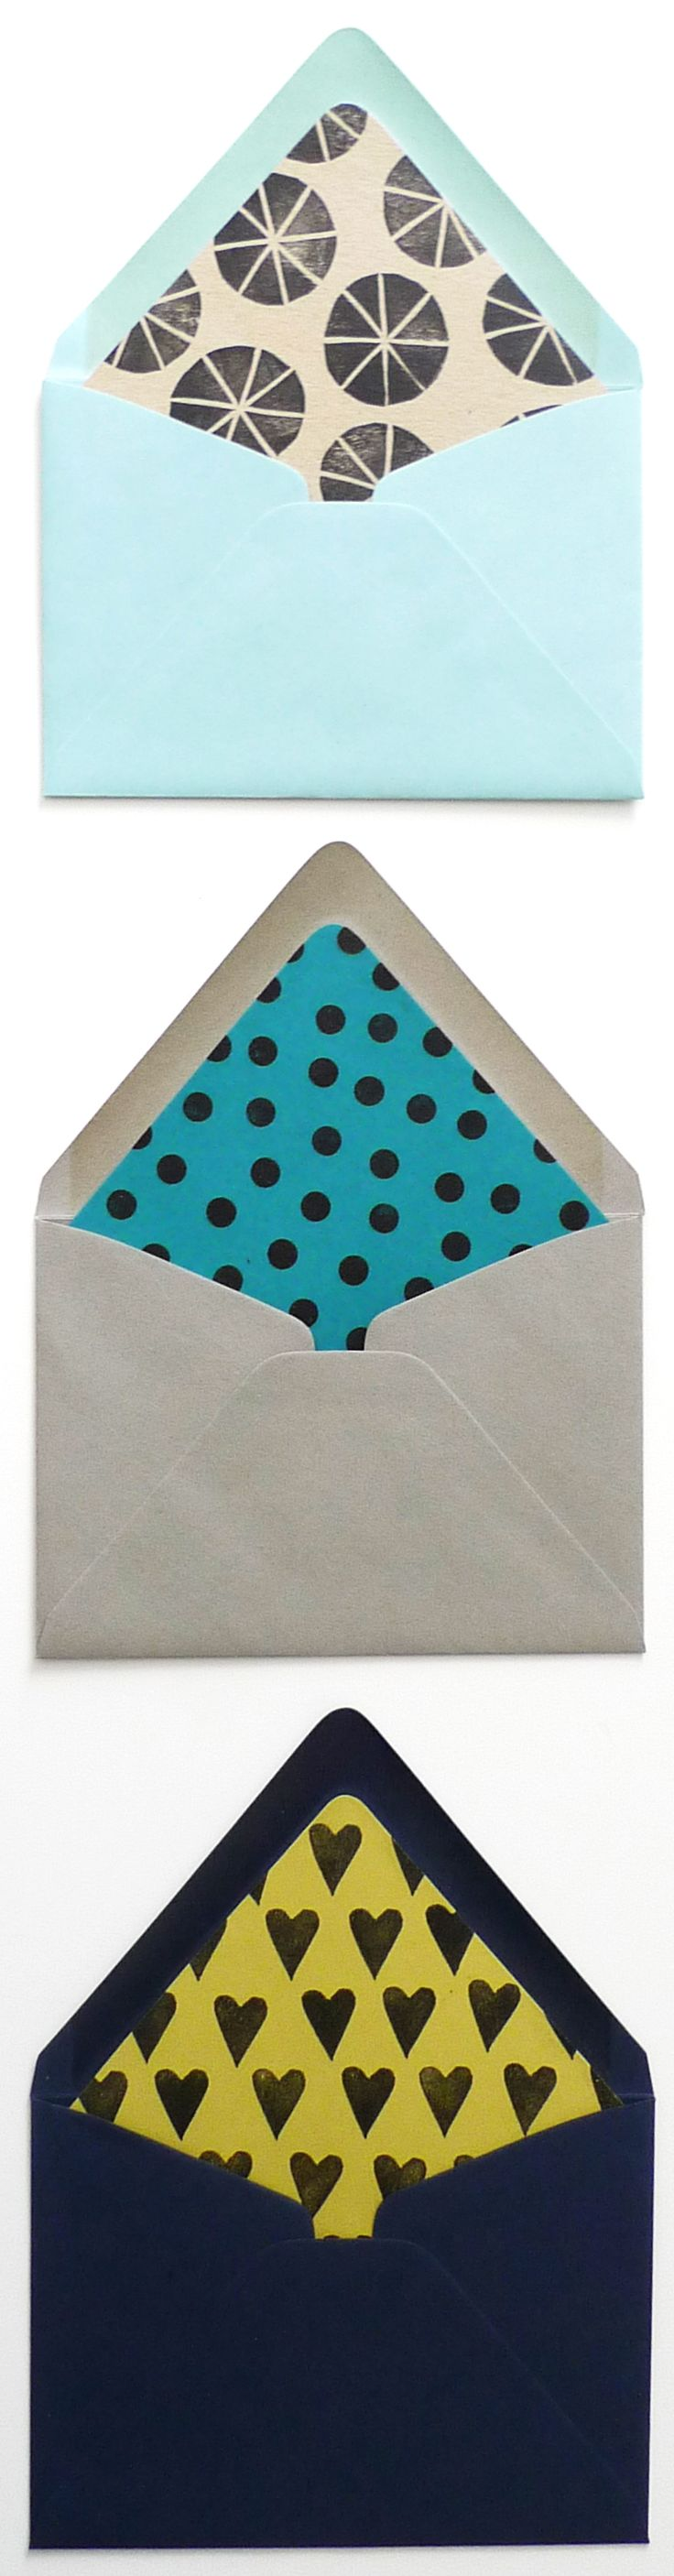 DIY envelope liners, using hand carved linoleum stamps to print your own pattern. Sure to impress any pen pal, and could even be used for wedding invites!